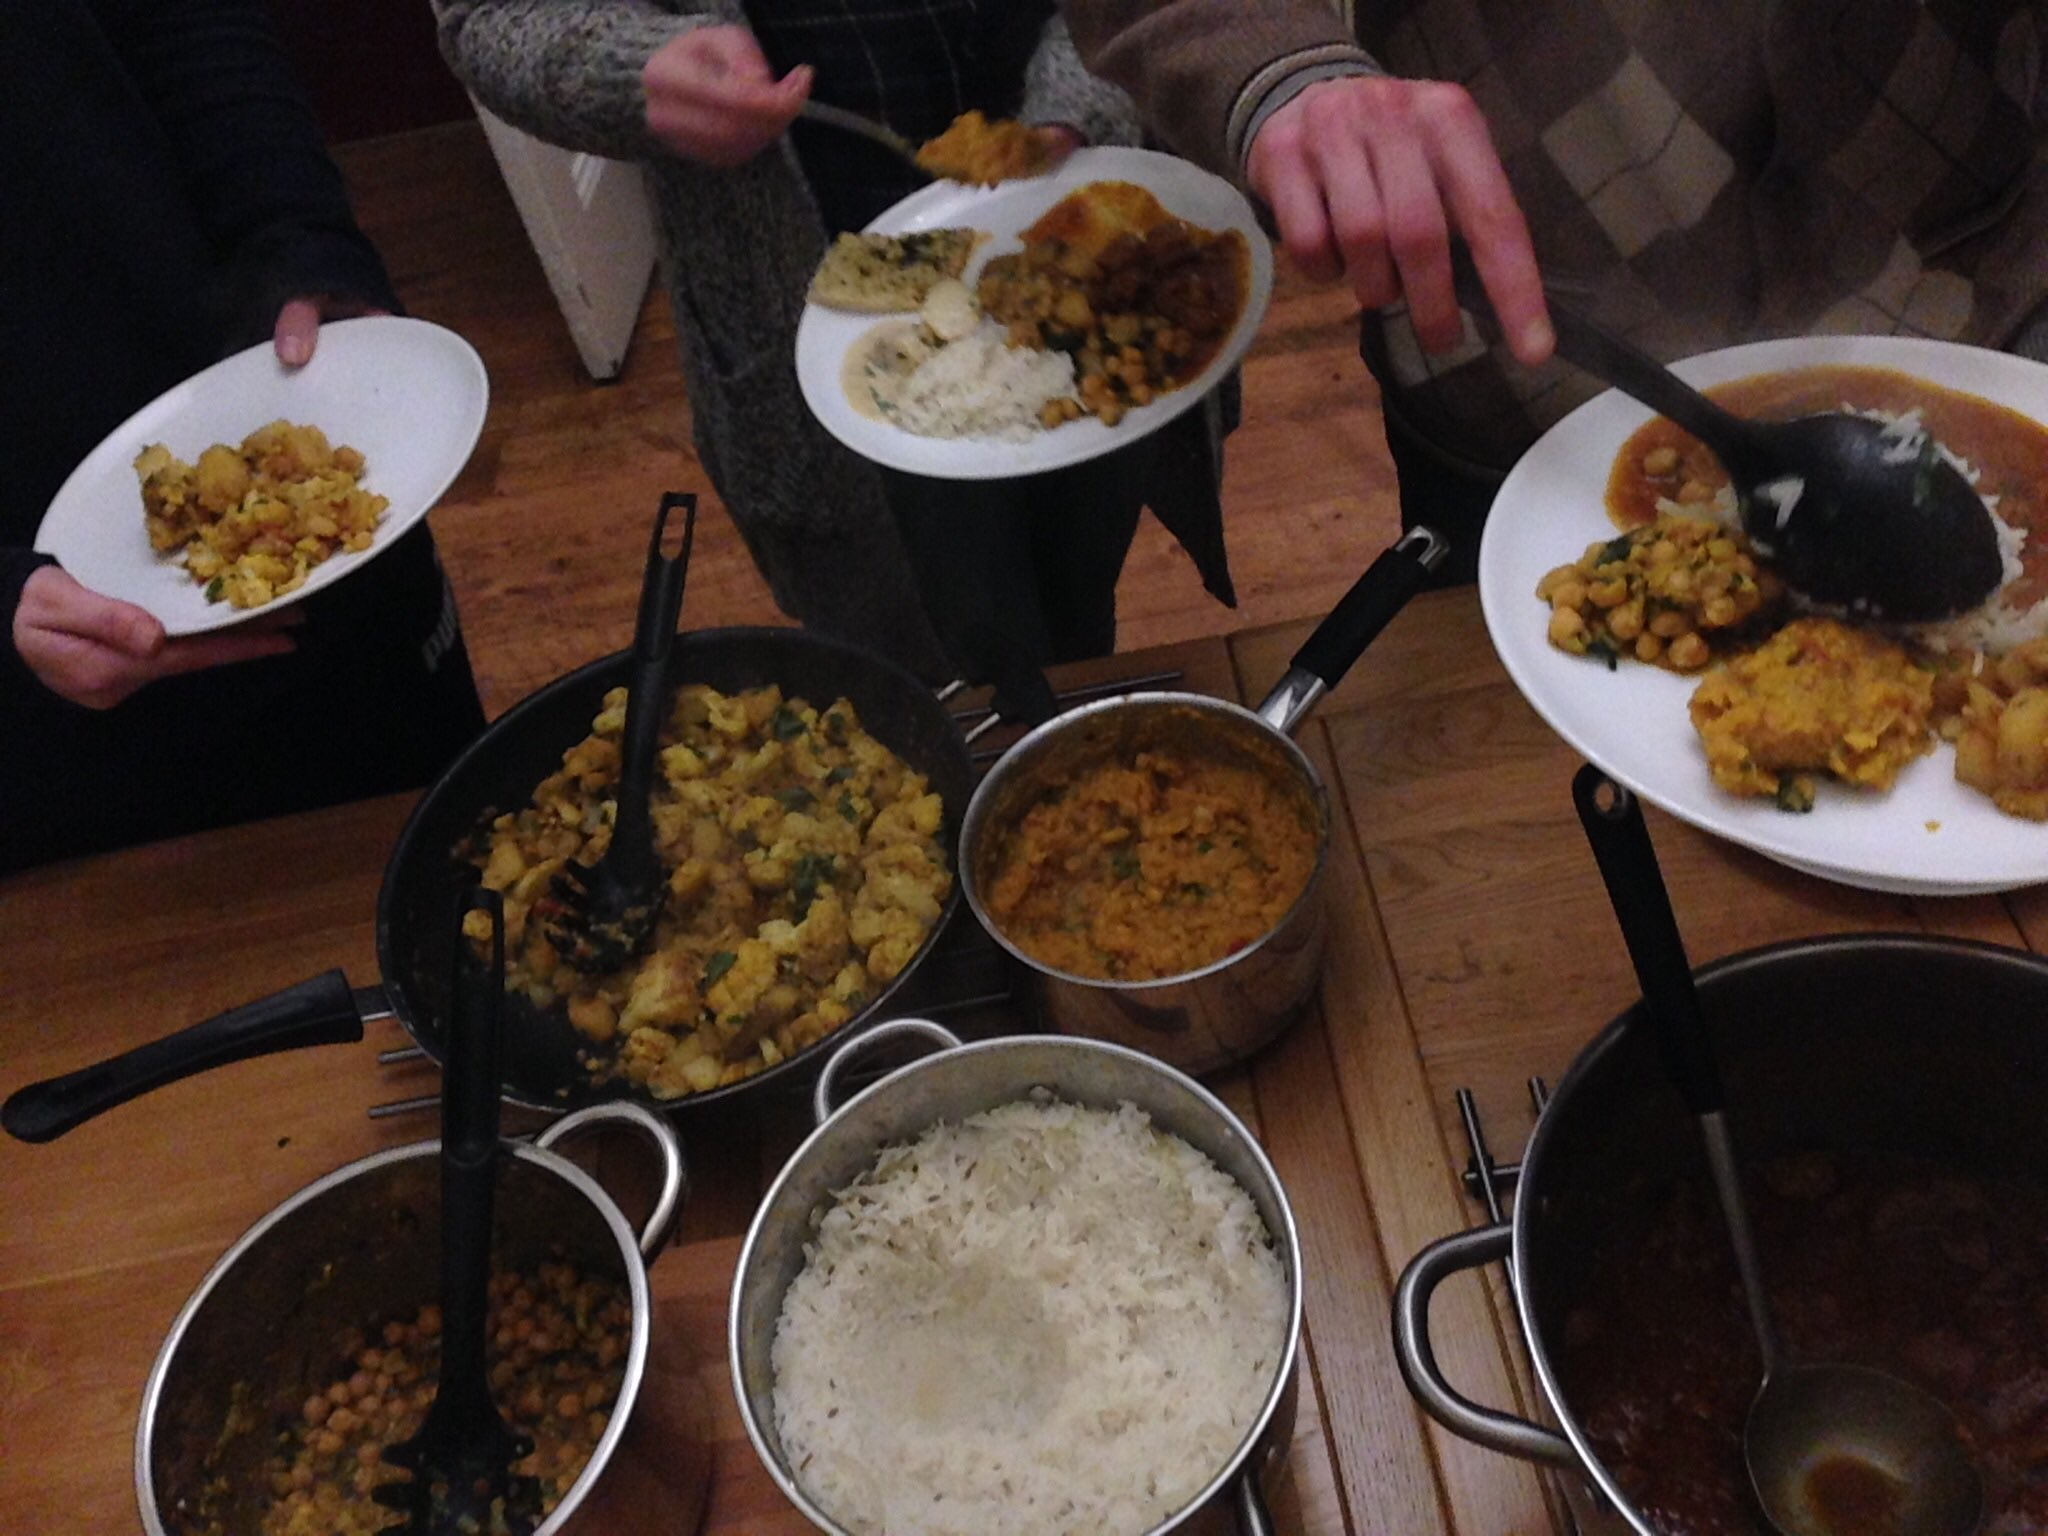 There is no end to her talents!@kully_ntw cooked up a feast for #ntwdreaming company last night @NTWtweets #rhyl https://t.co/6sJsjSMxbm